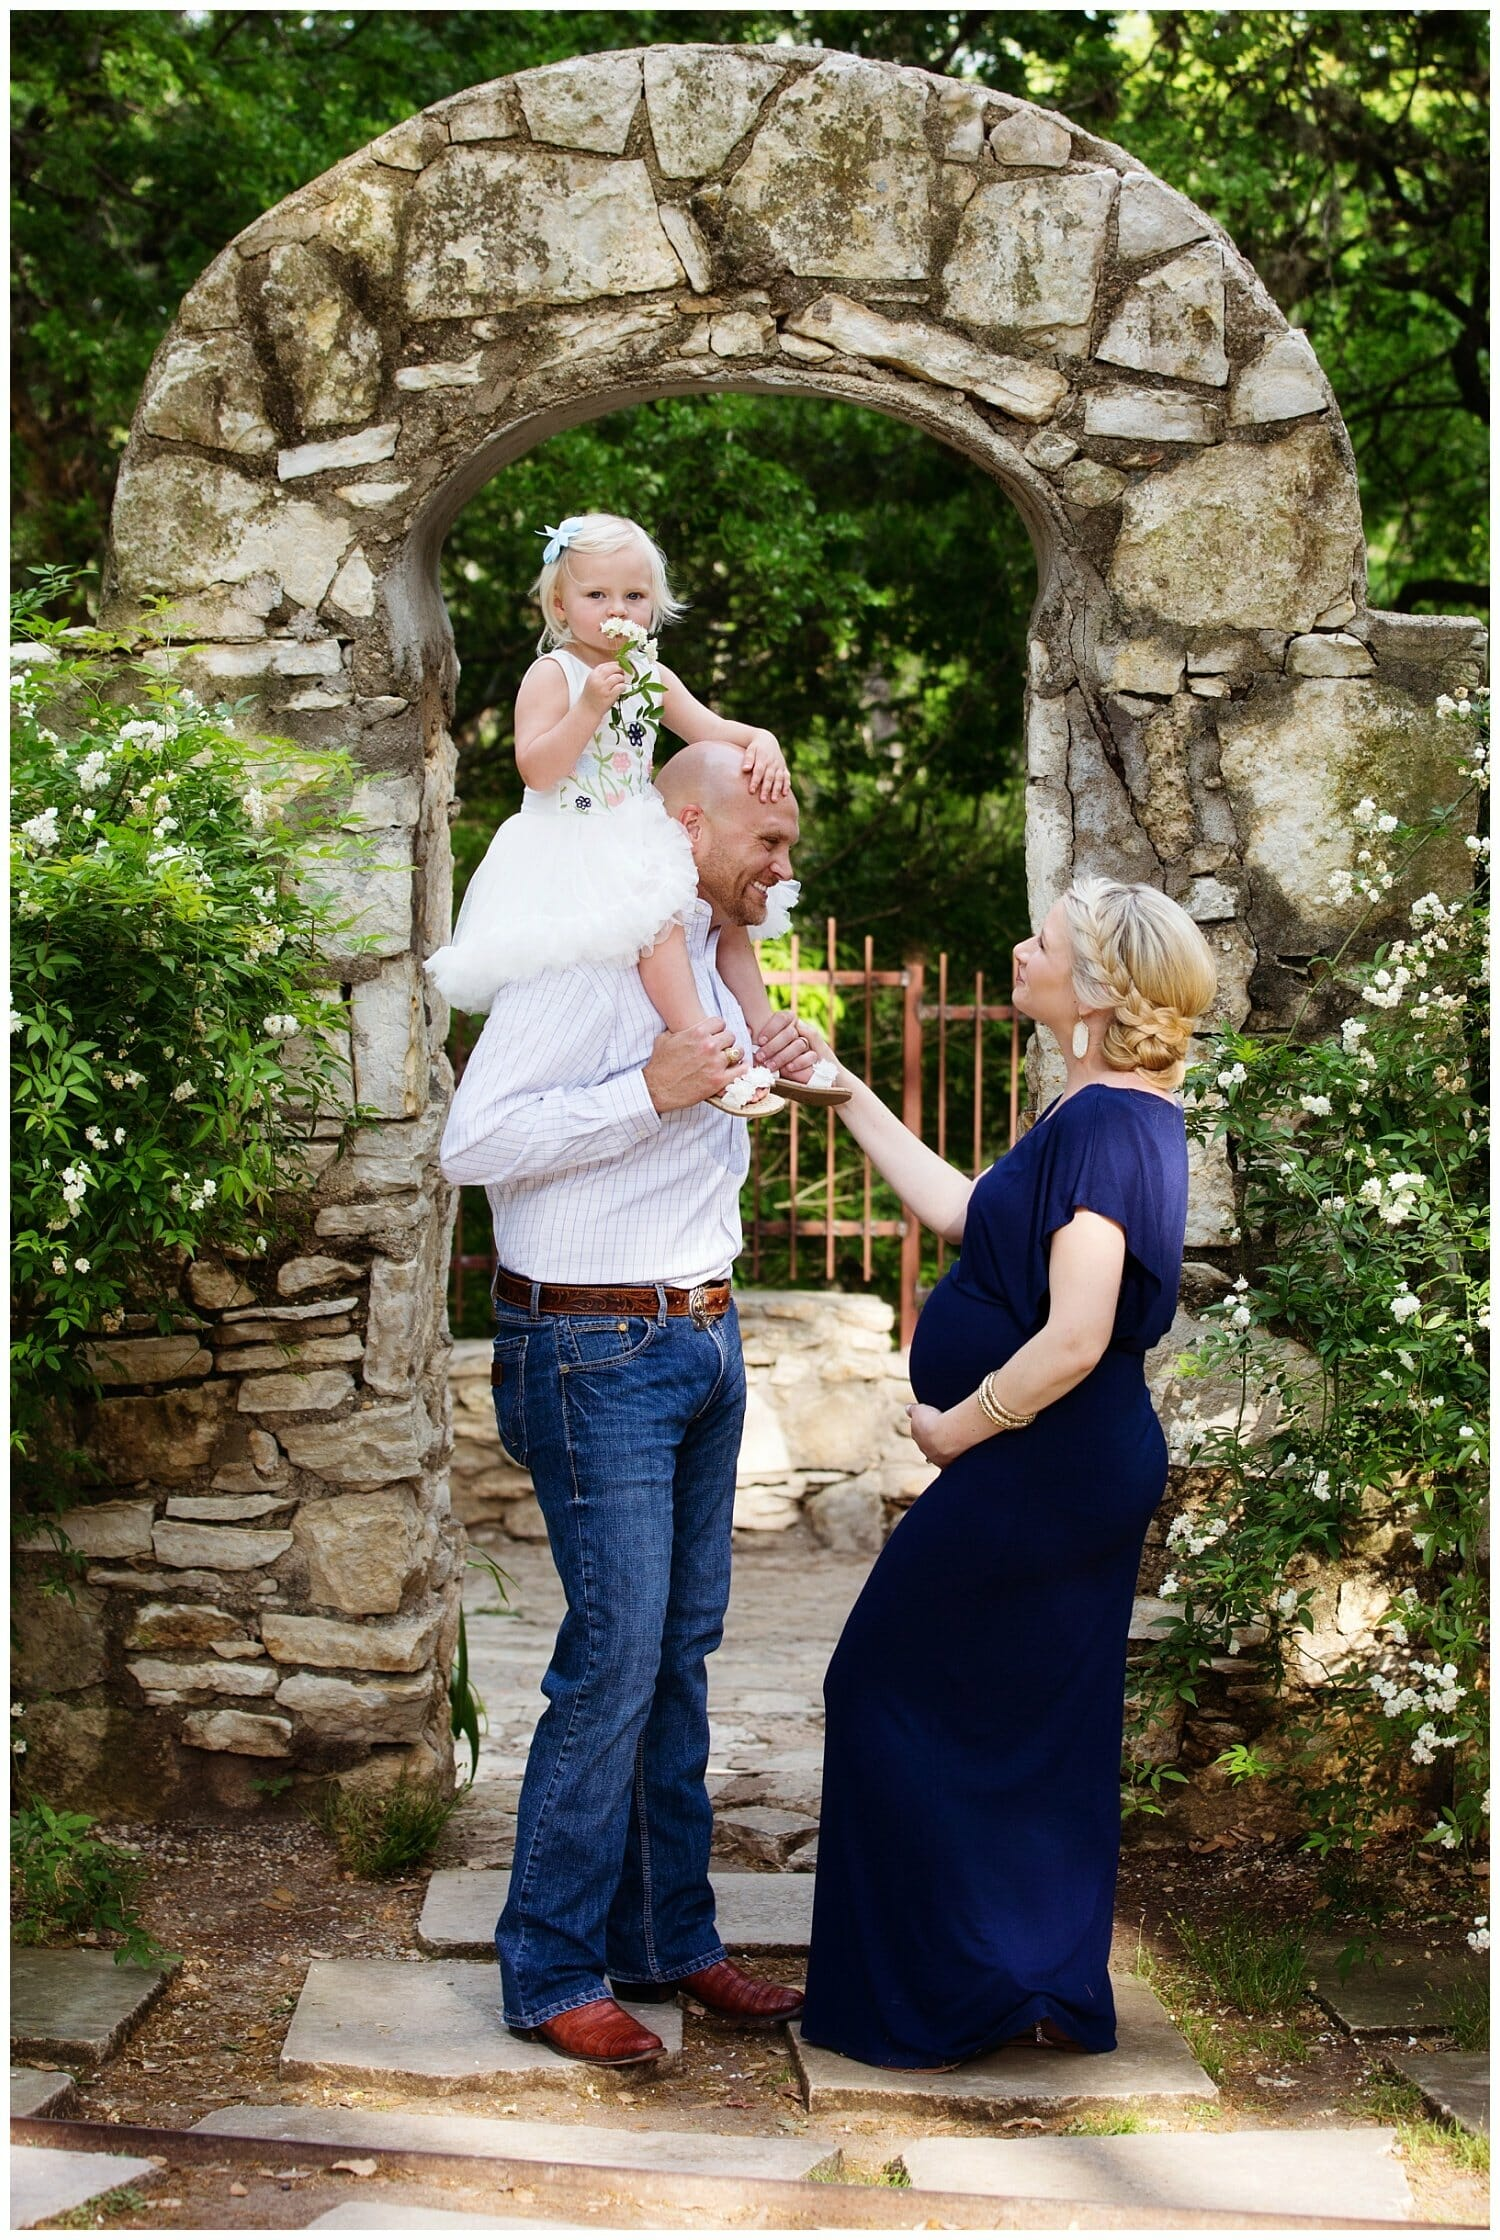 Austin Area Outdoor Family Maternity Photographer